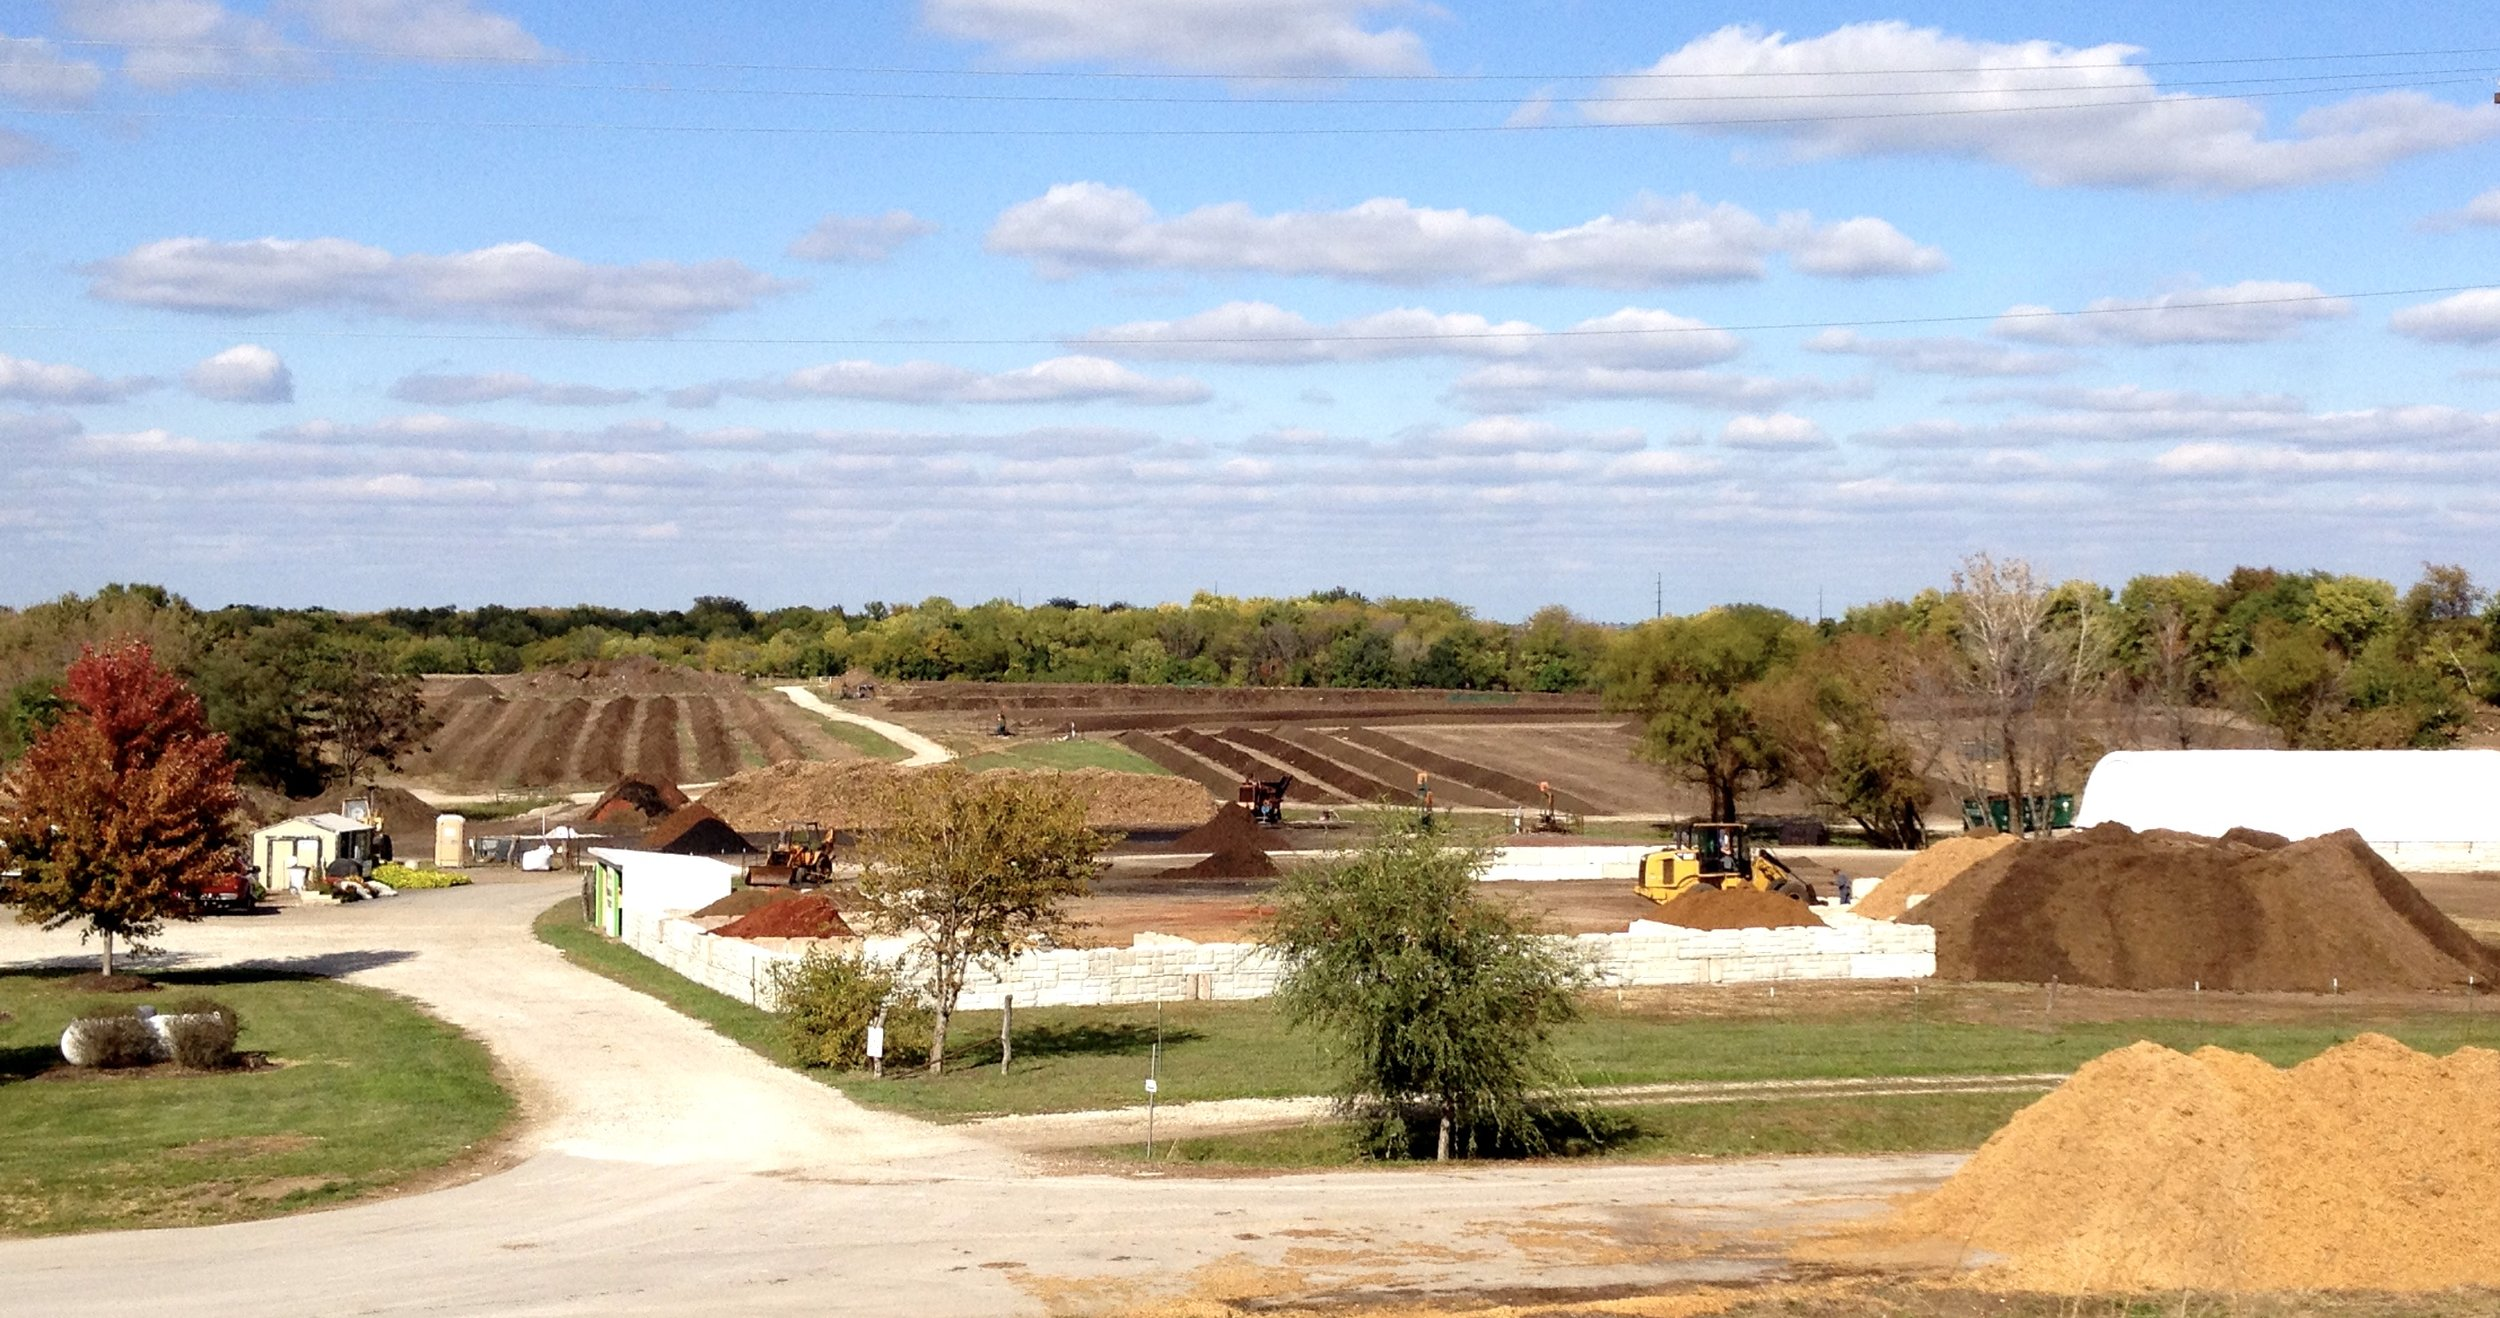 Lawn-Corps' 37 acre composting facility in Belton, Missouri.